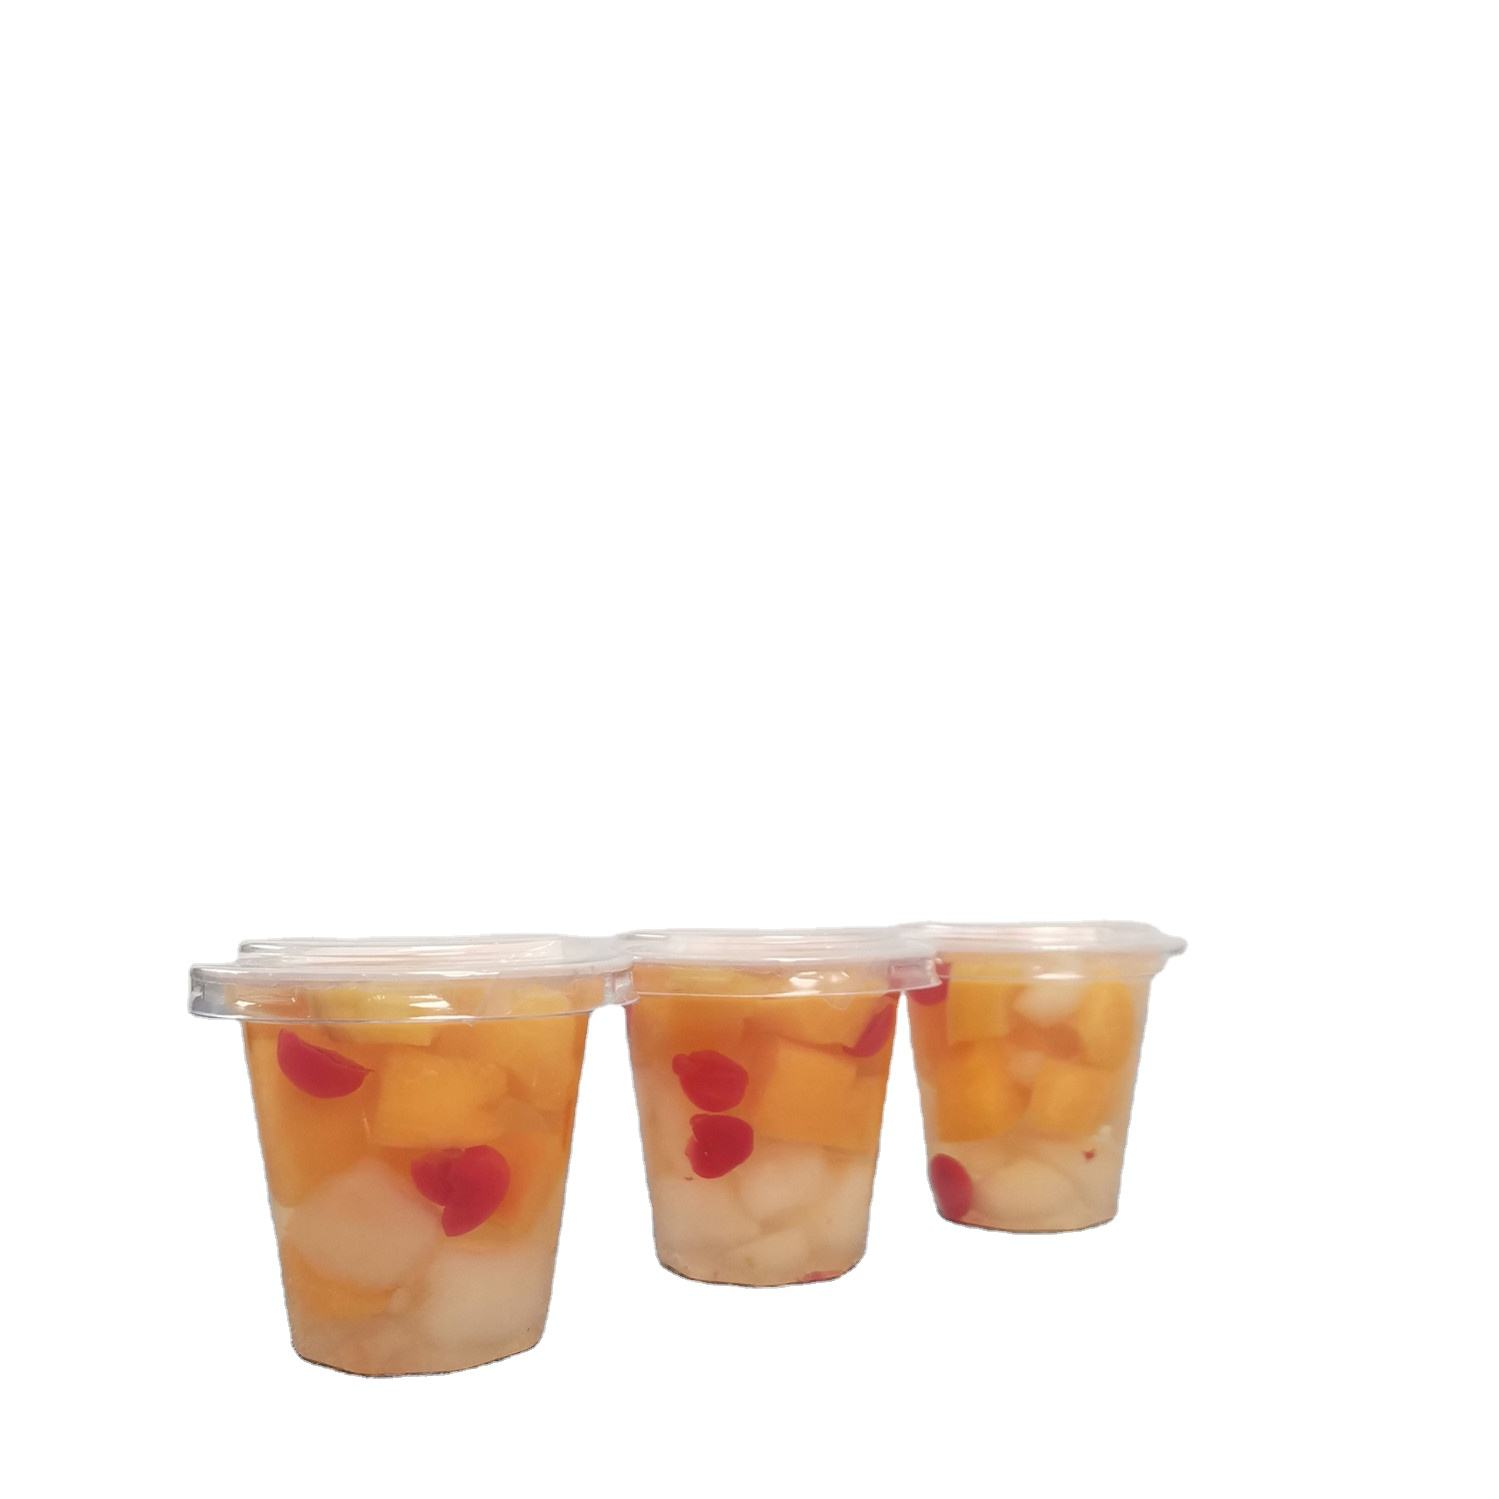 Factory Supply Foods Cup Fruit Cocktail in Light Syrup 198g/7oz